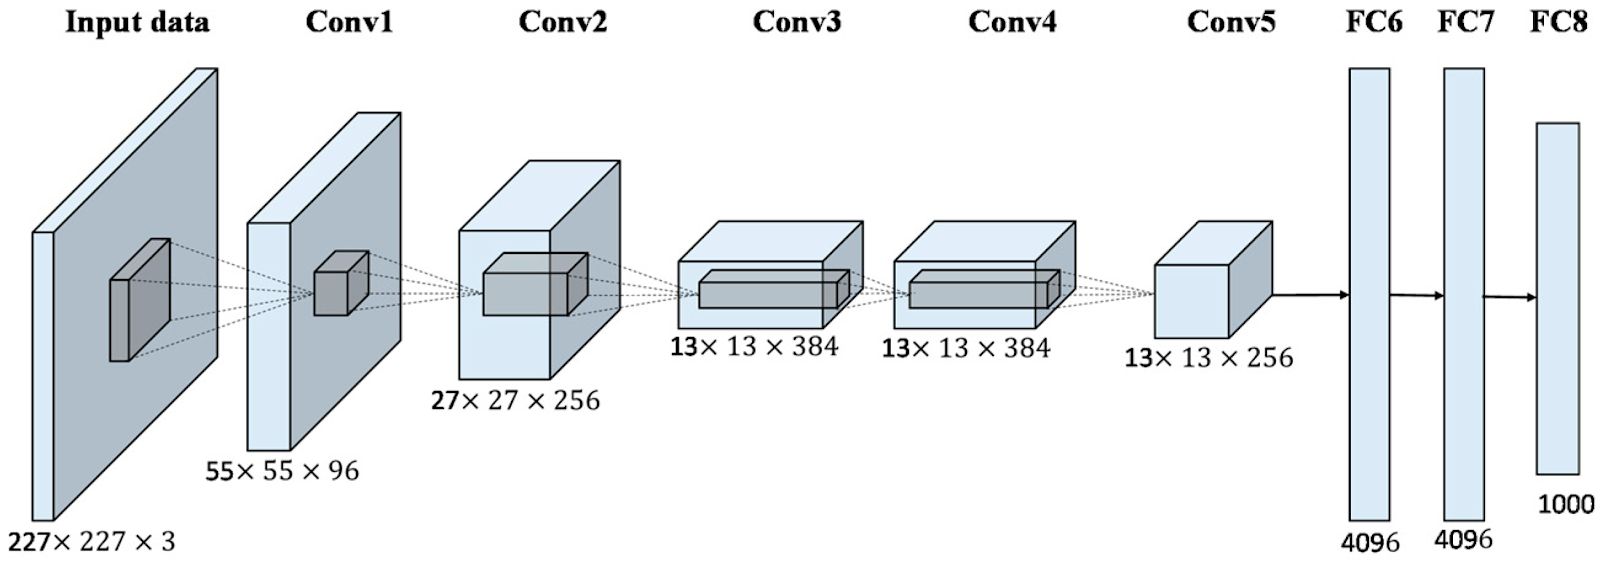 Image showing alexnet architecture